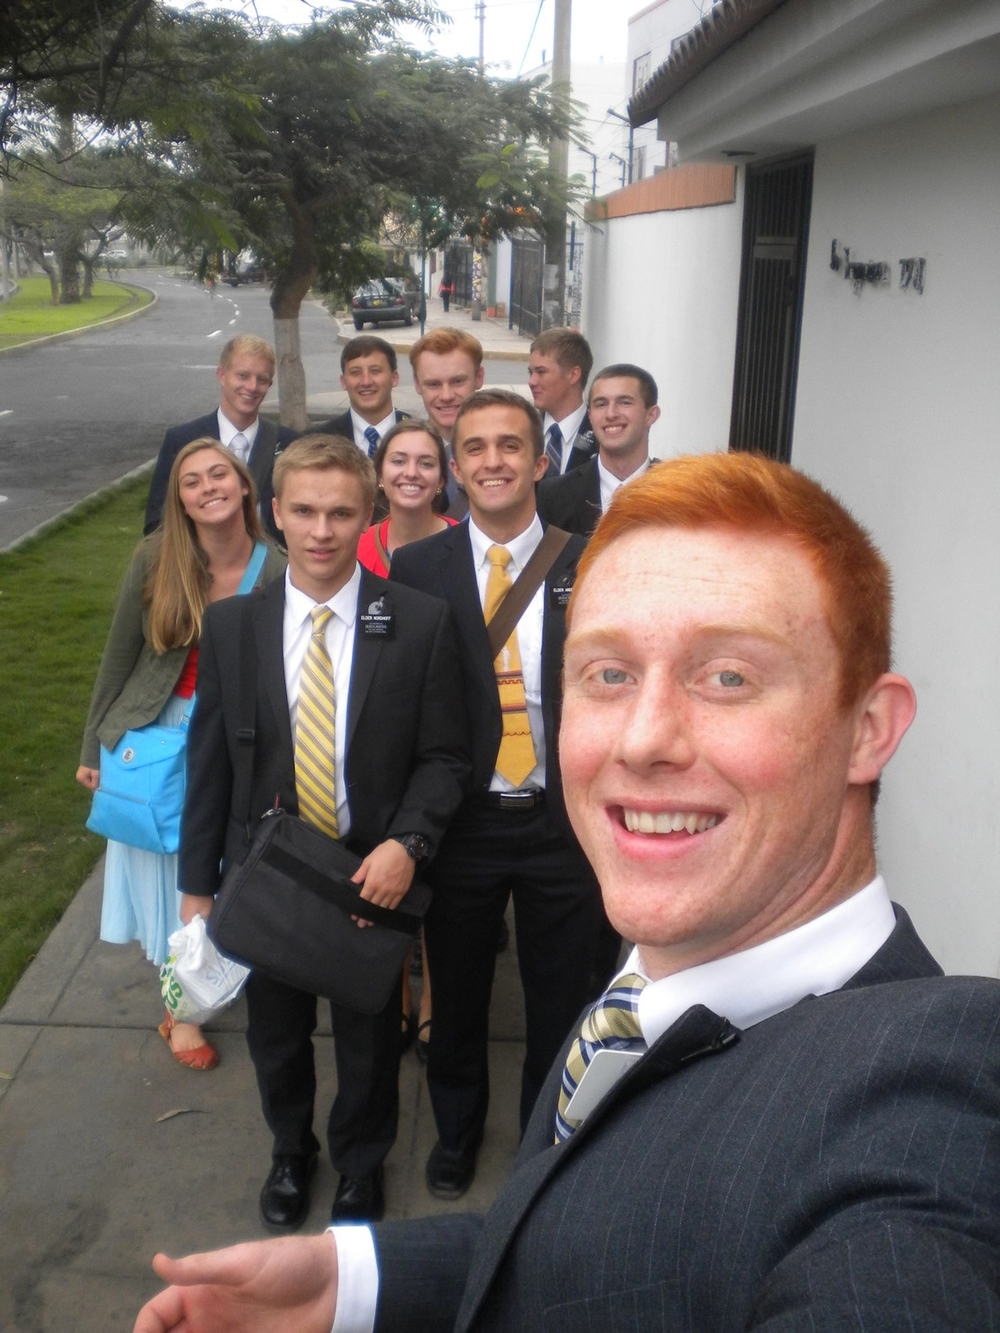 District Leader selfie!